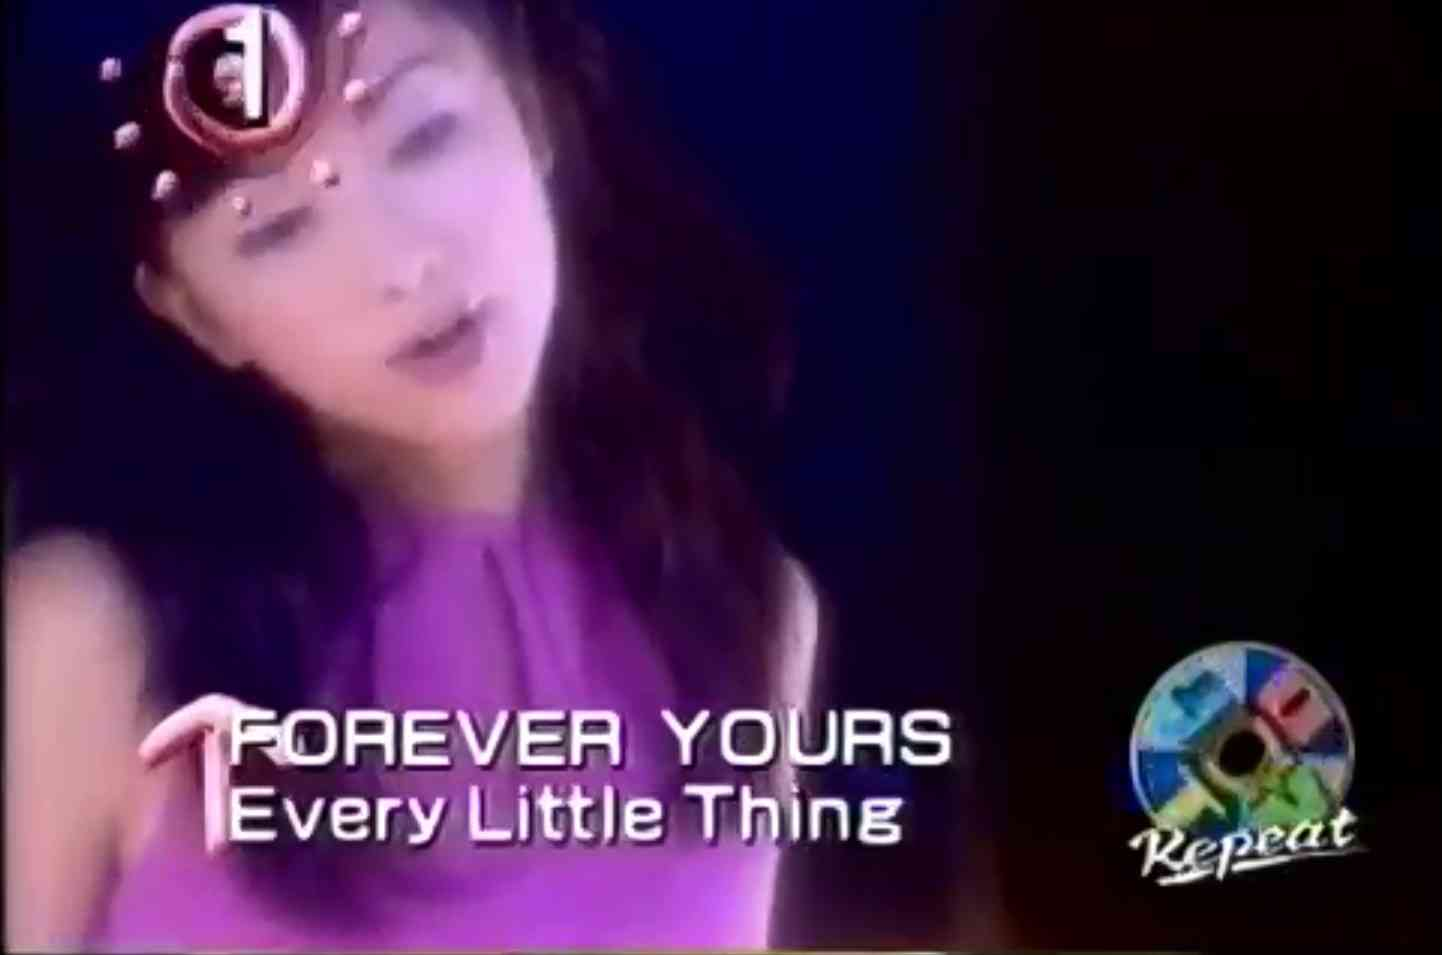 Every Little Thing 好きな人〜!